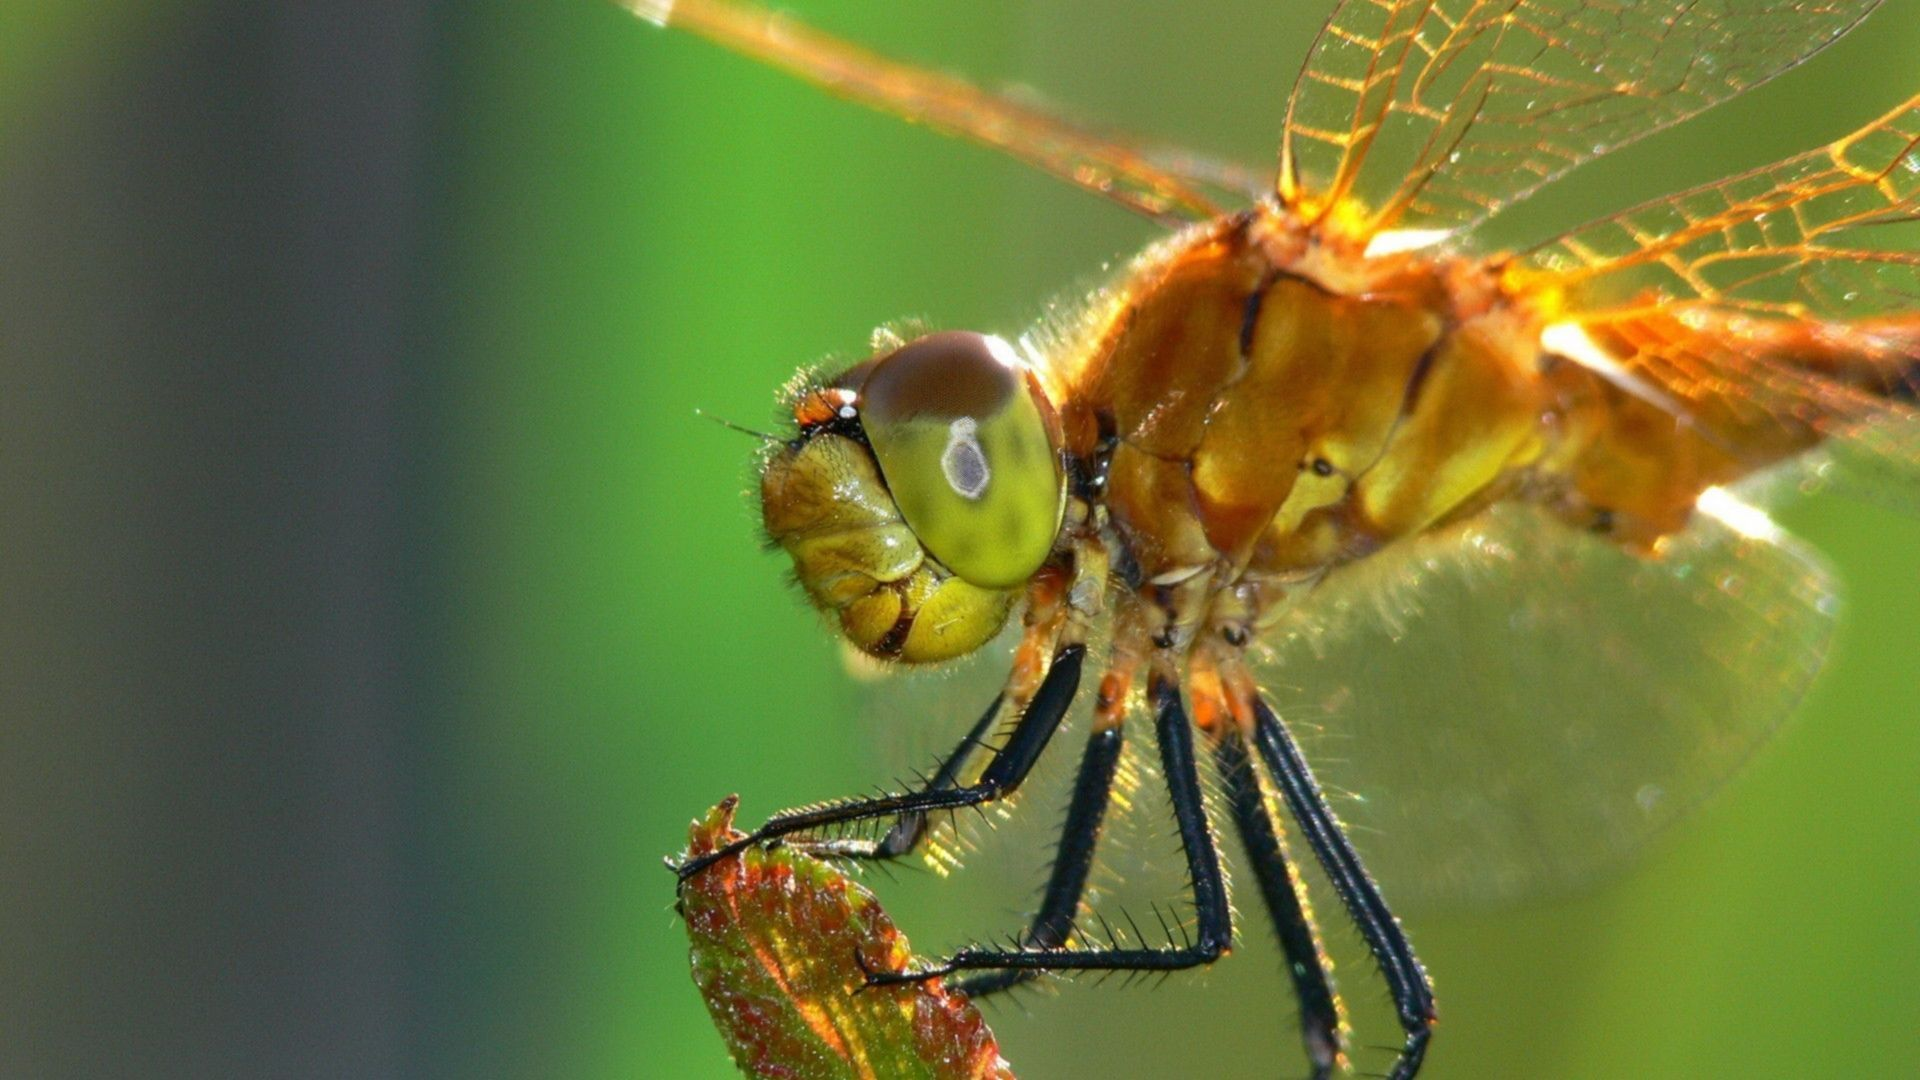 DRAGONFLY........SOURCE BING IMAGES.........The dragonfly